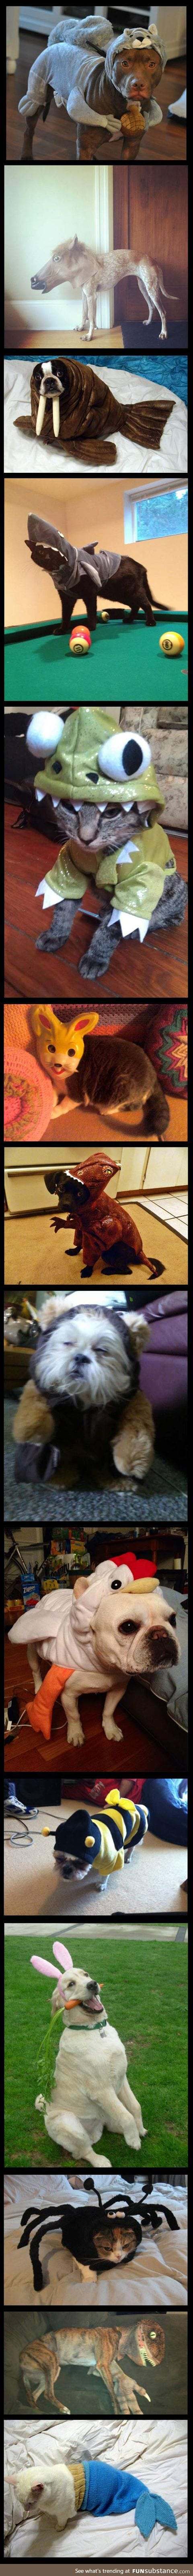 Animals pretending to be other animals